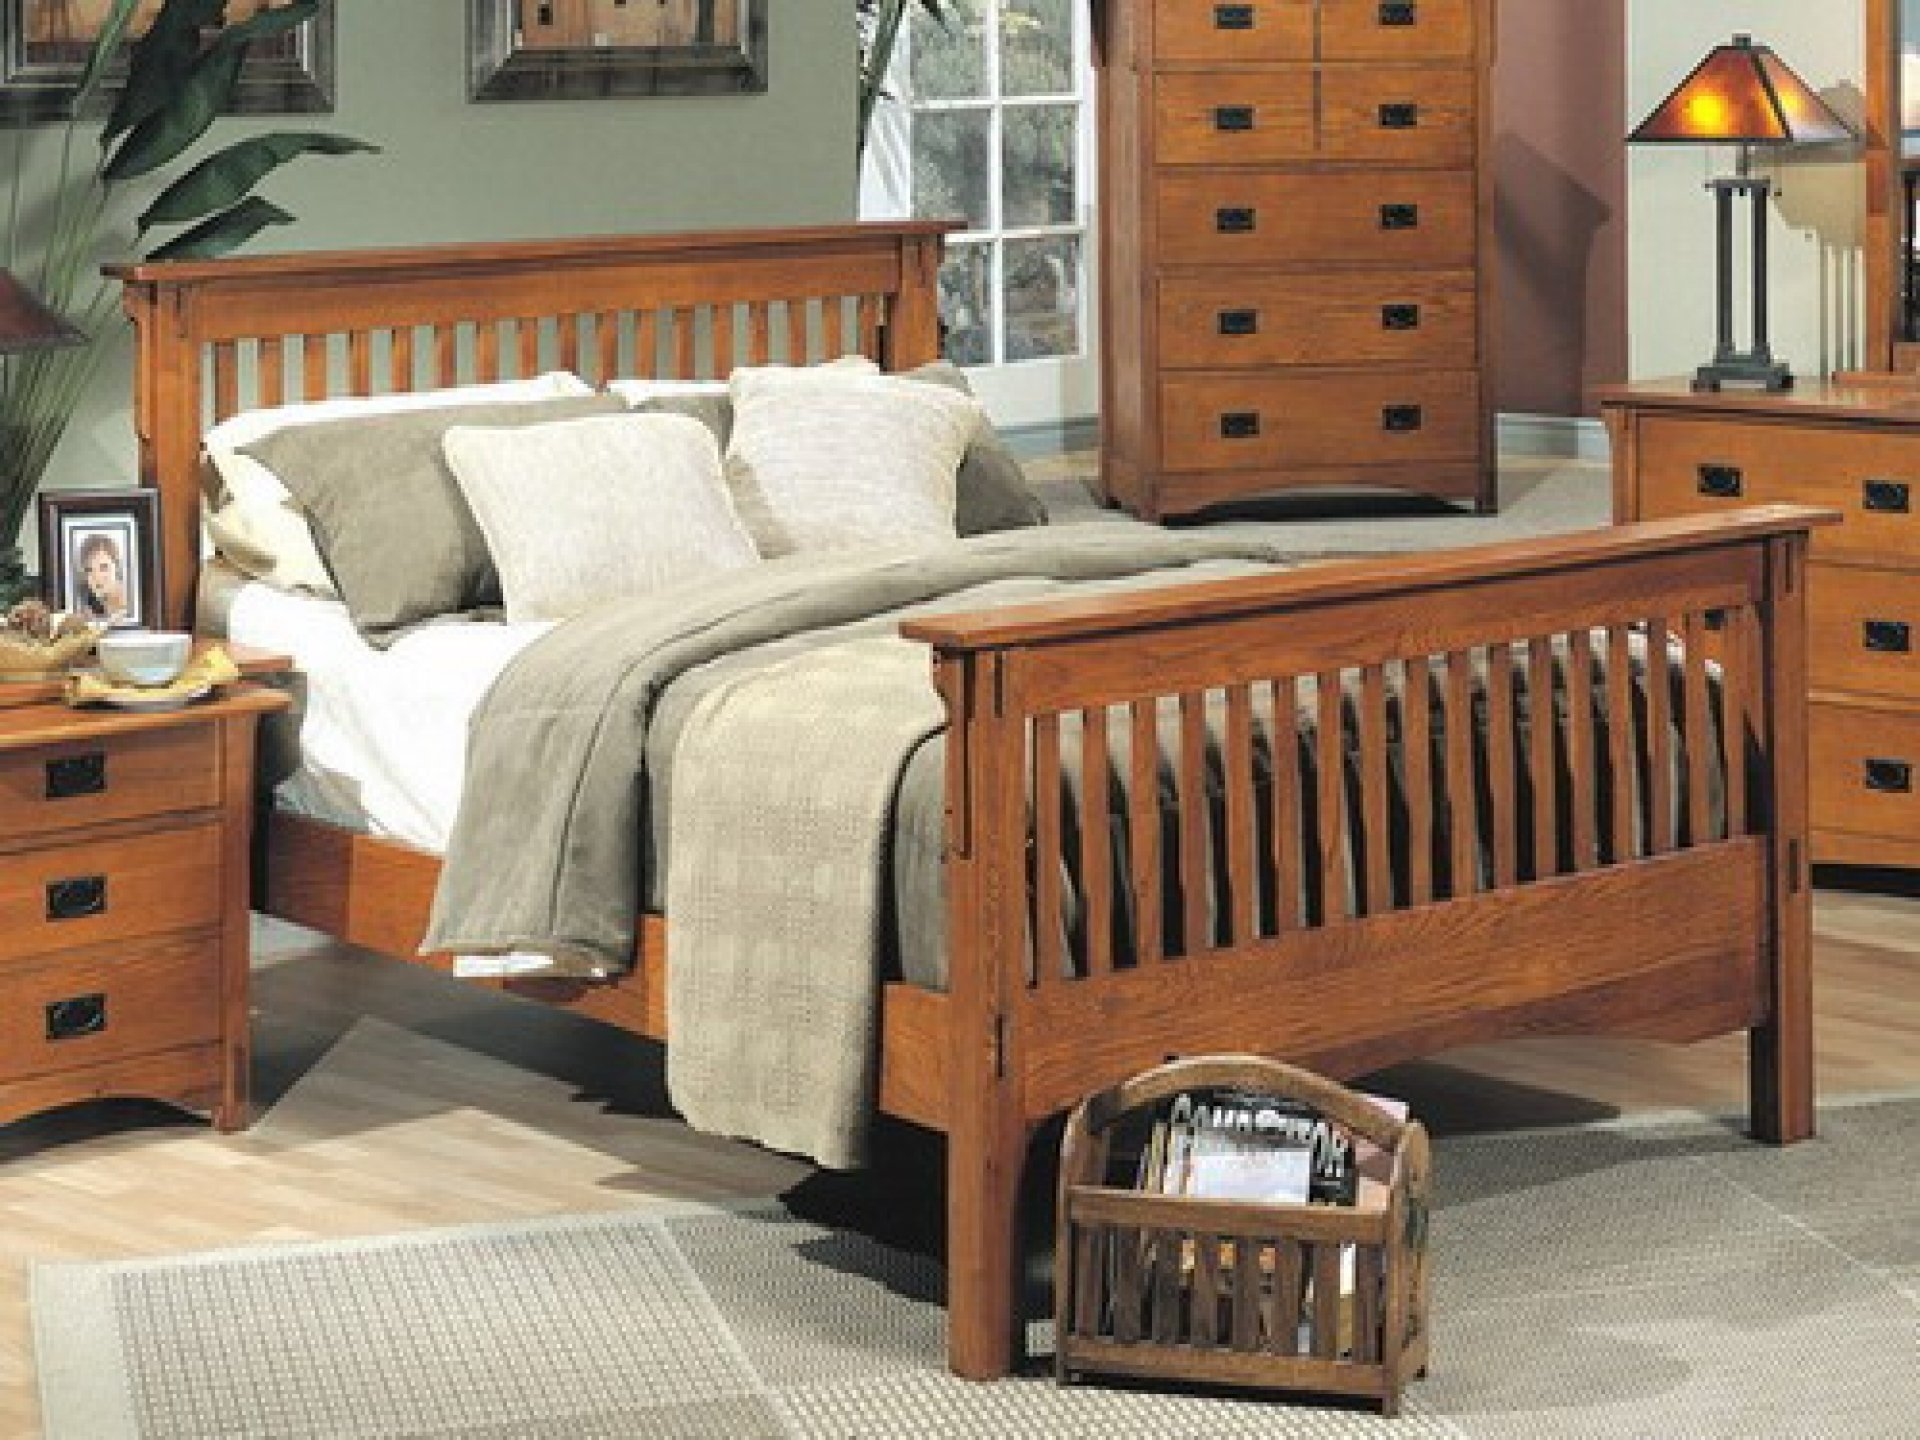 How to build a wooden bed frame 22 interesting ways for Arts and crafts bed plans